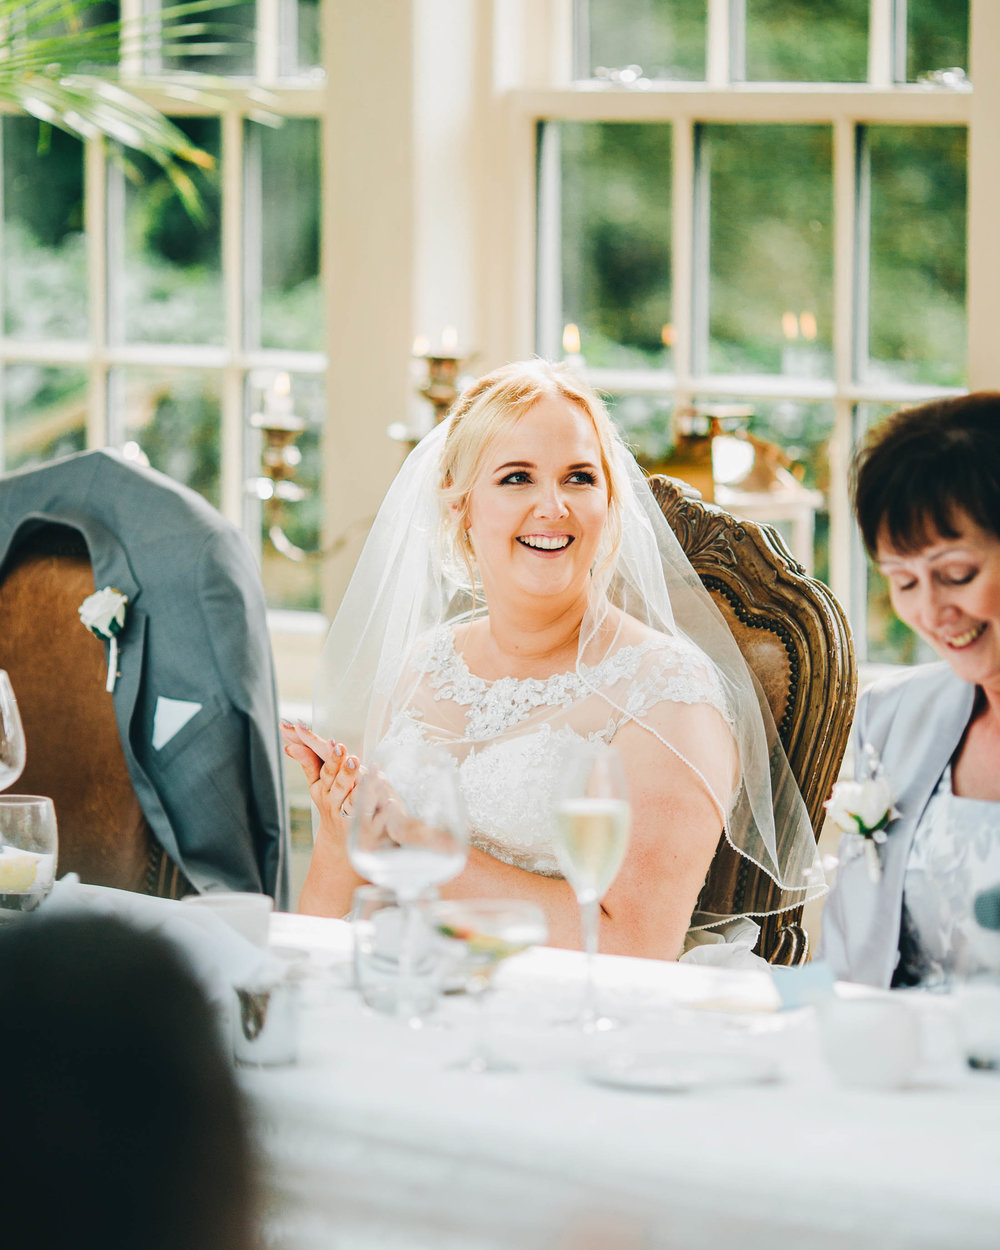 Smiles from the bride during wedding speeches. Documentary styled wedding photographer.